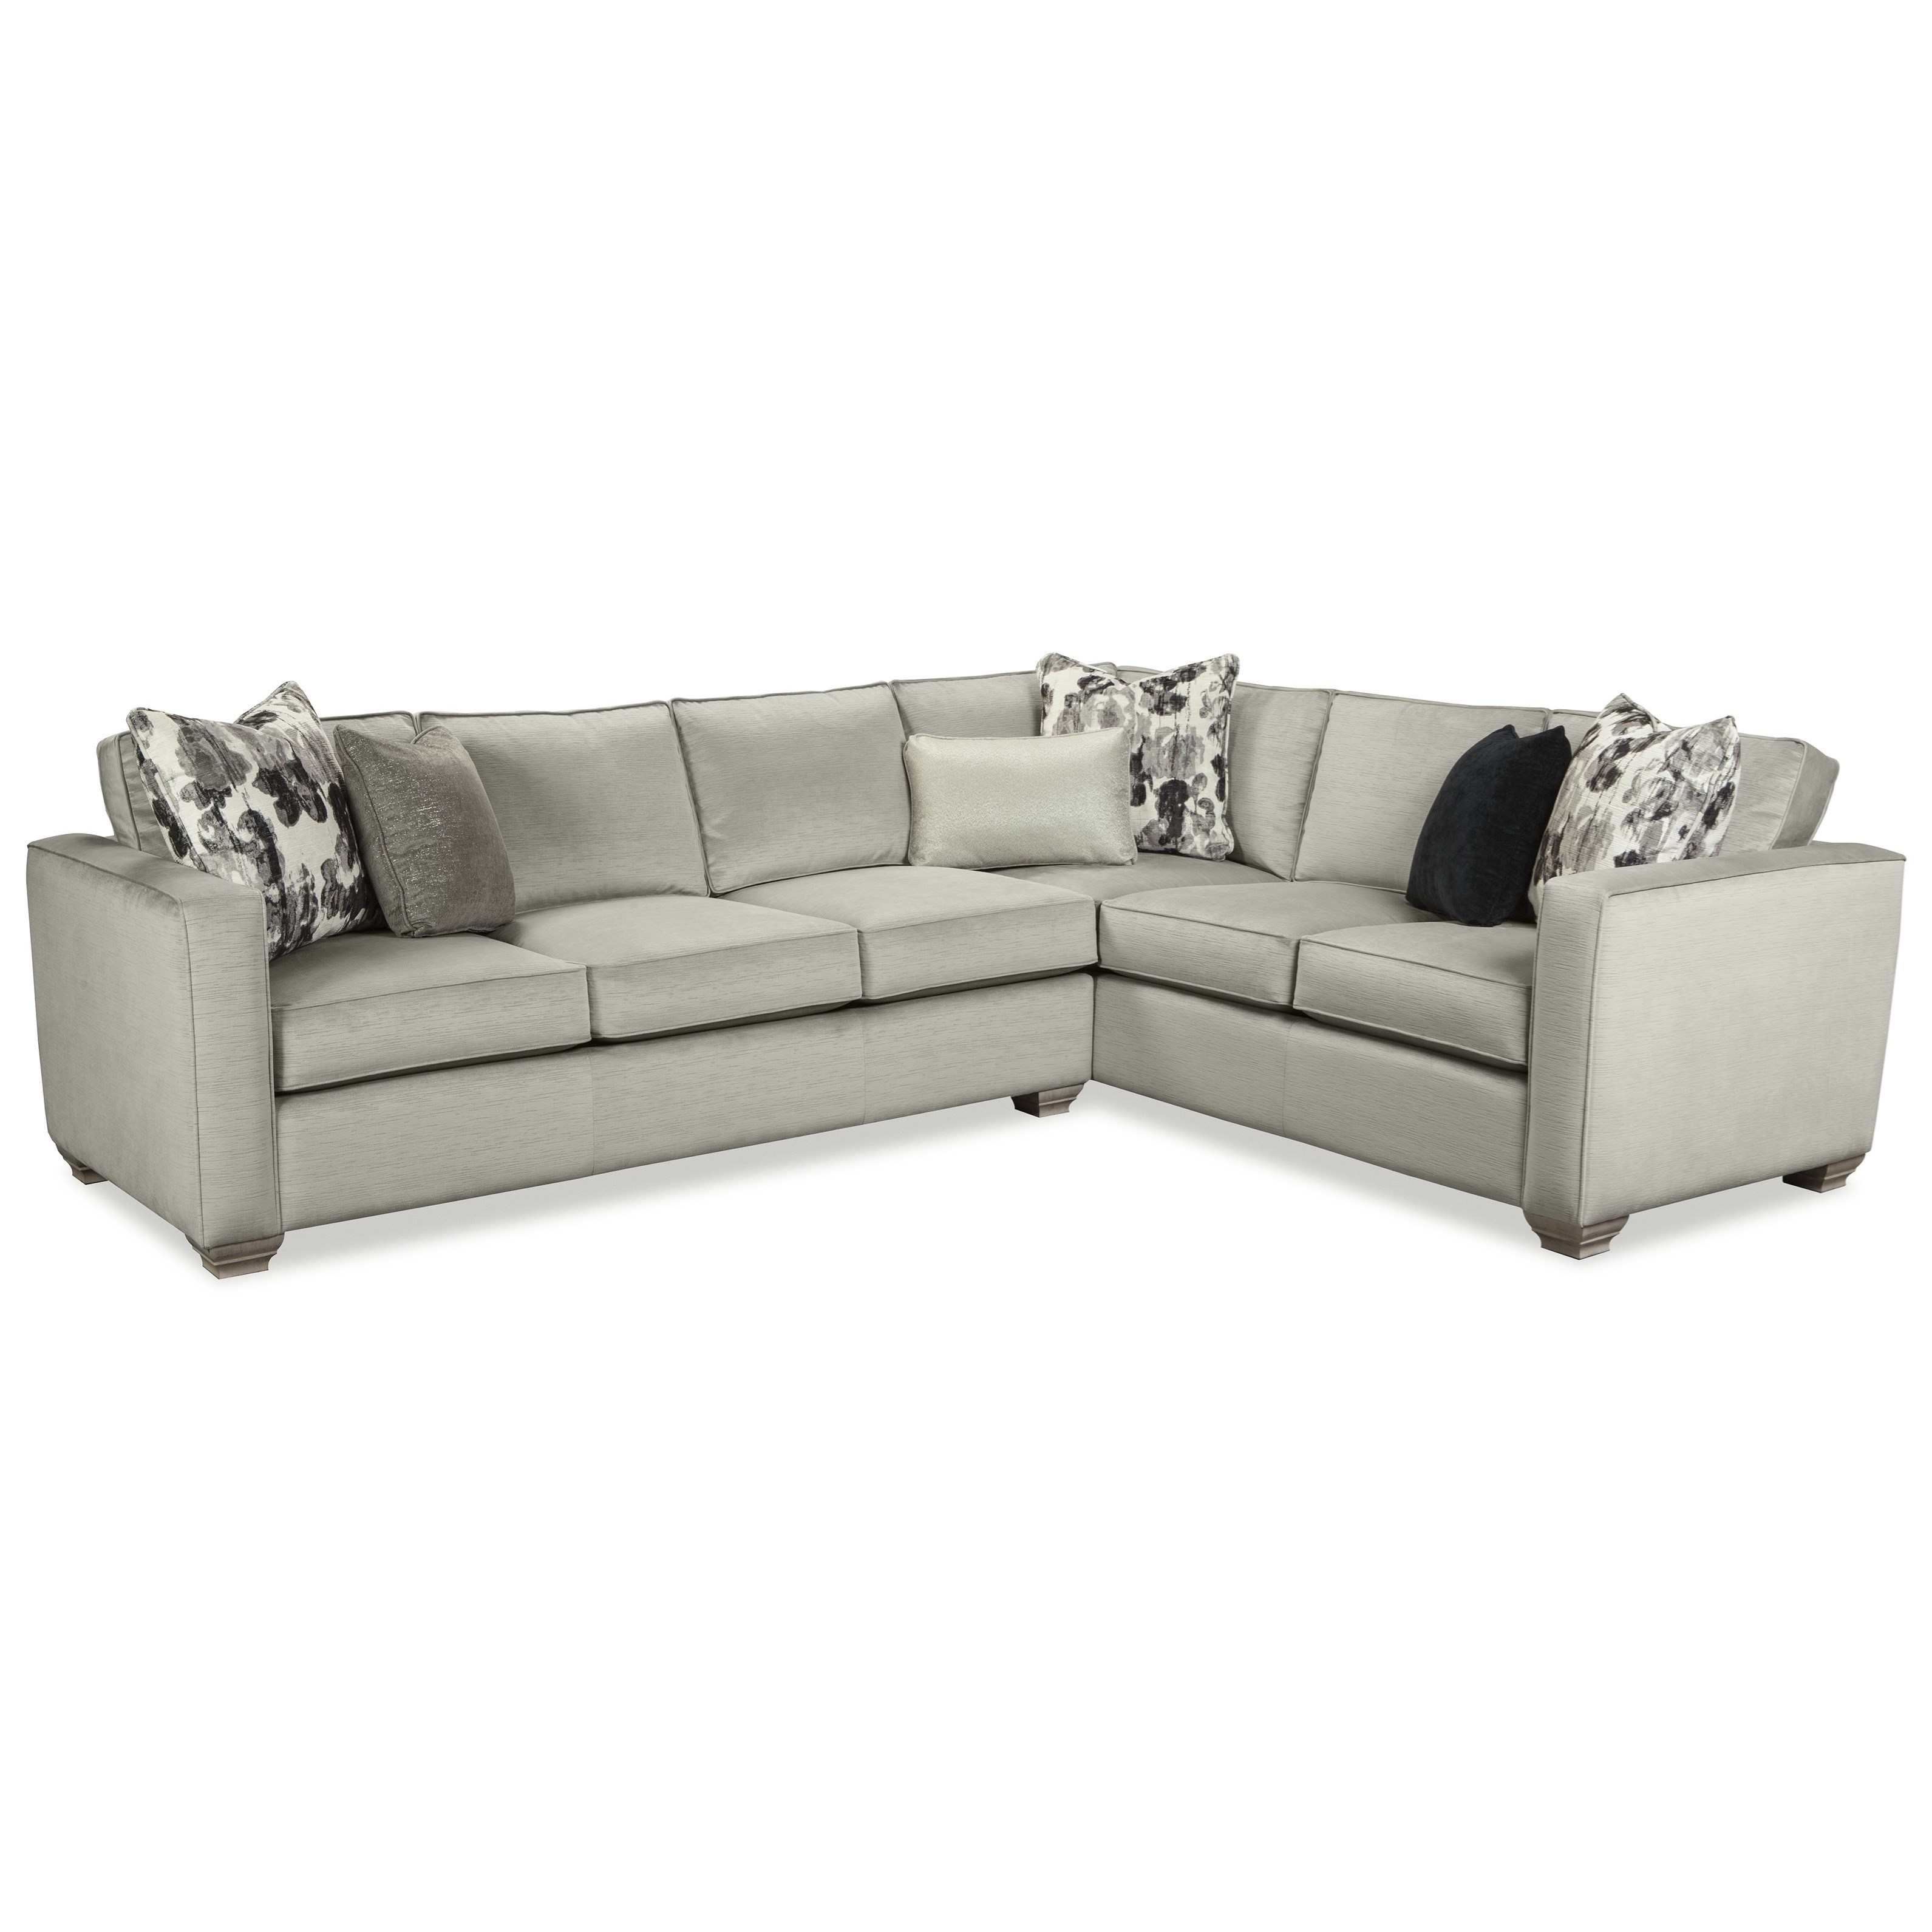 Rachael Ray Home by Craftmaster R7727 Two Piece Sectional Sofa with RAF Sofa Return  sc 1 st  Colderu0027s : colders sectionals - Sectionals, Sofas & Couches